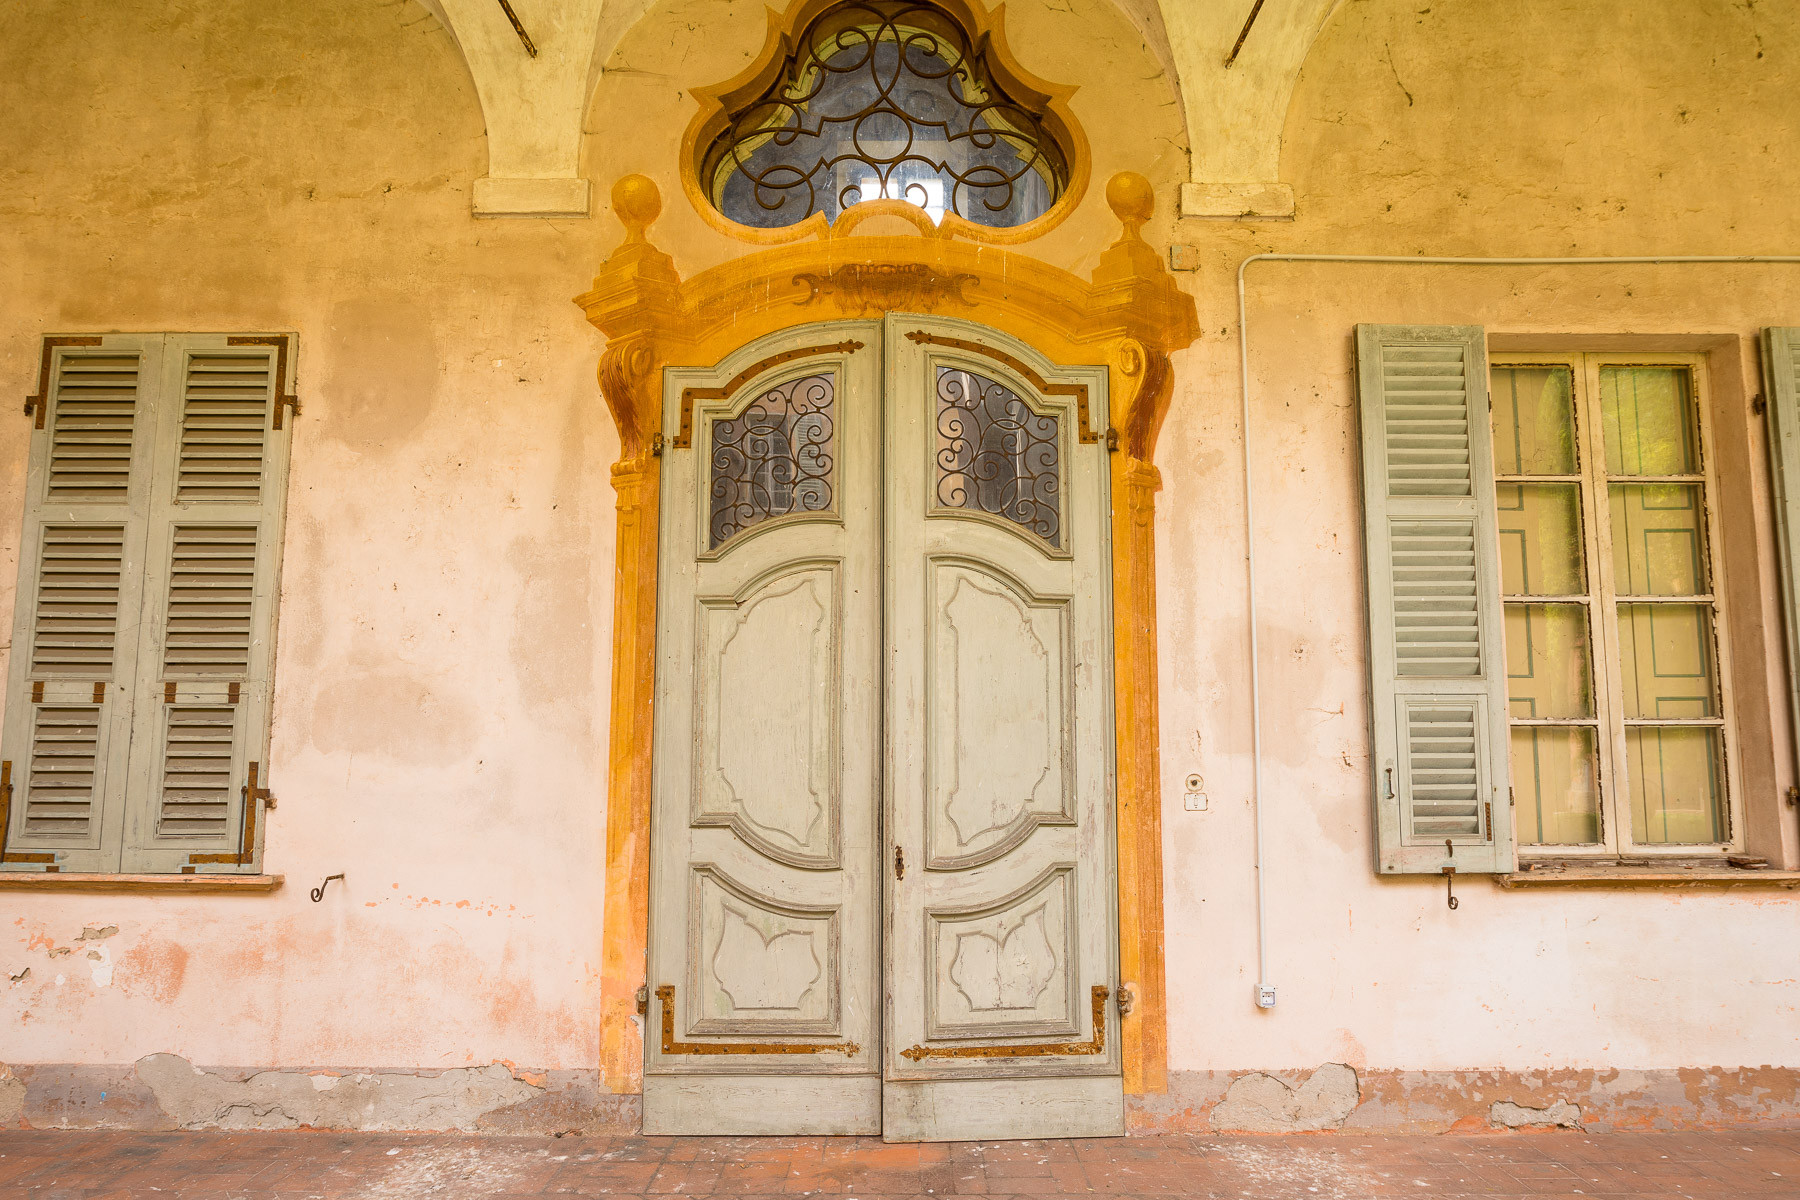 Single Family Home for Sale at Stately 16th century manor Cascina Rosano Other Alessandria, Alessandria 15052 Italy